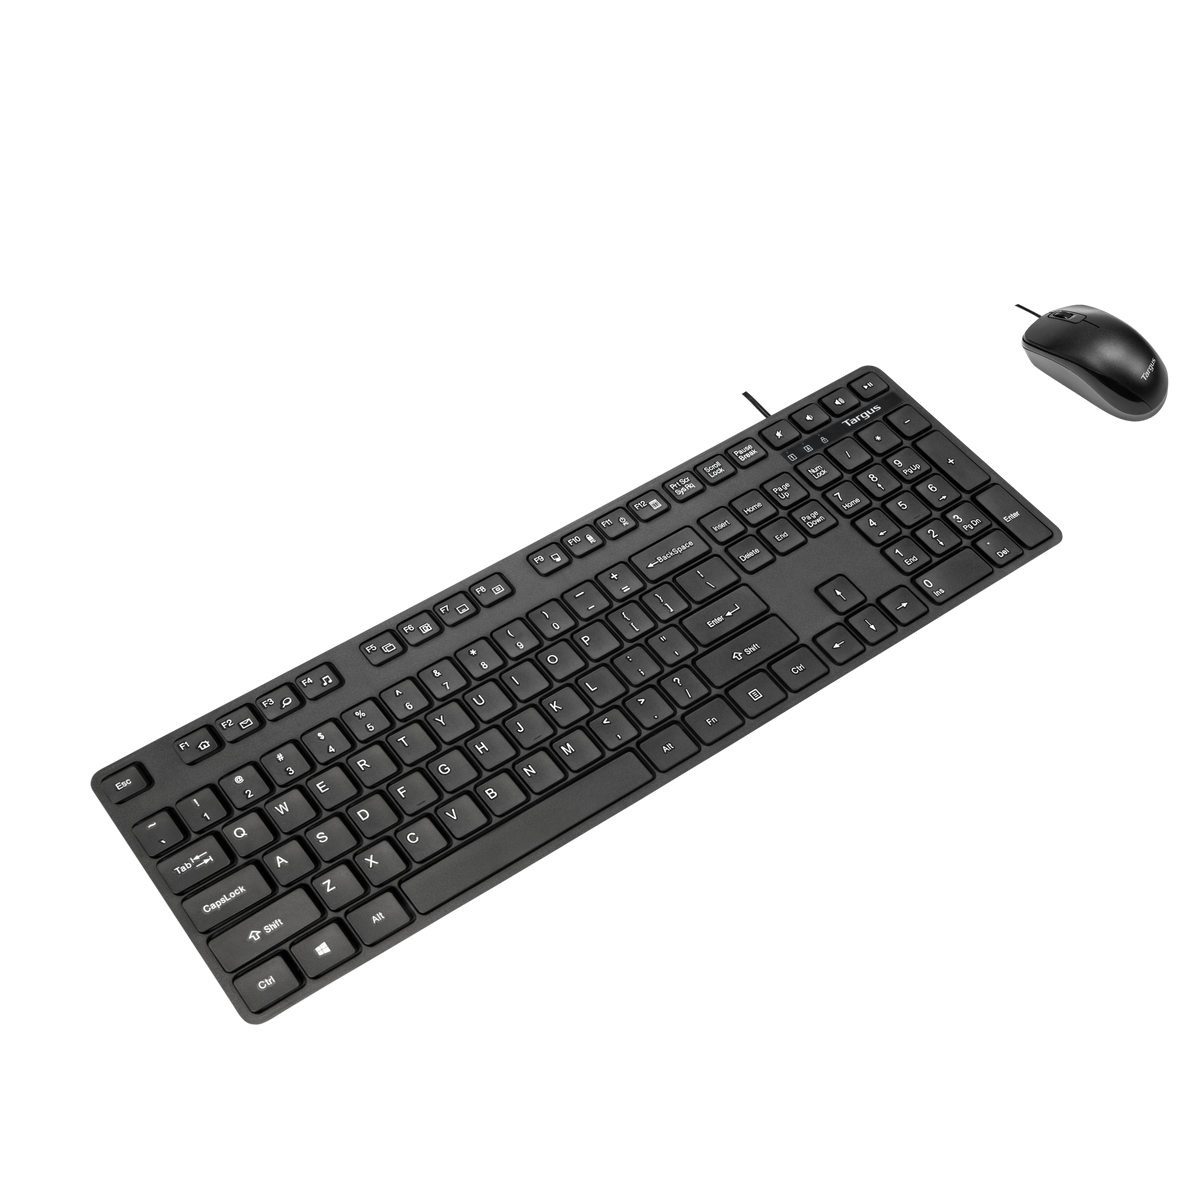 Targus AKM600 Corporate USB Wired Keyboard & Mouse